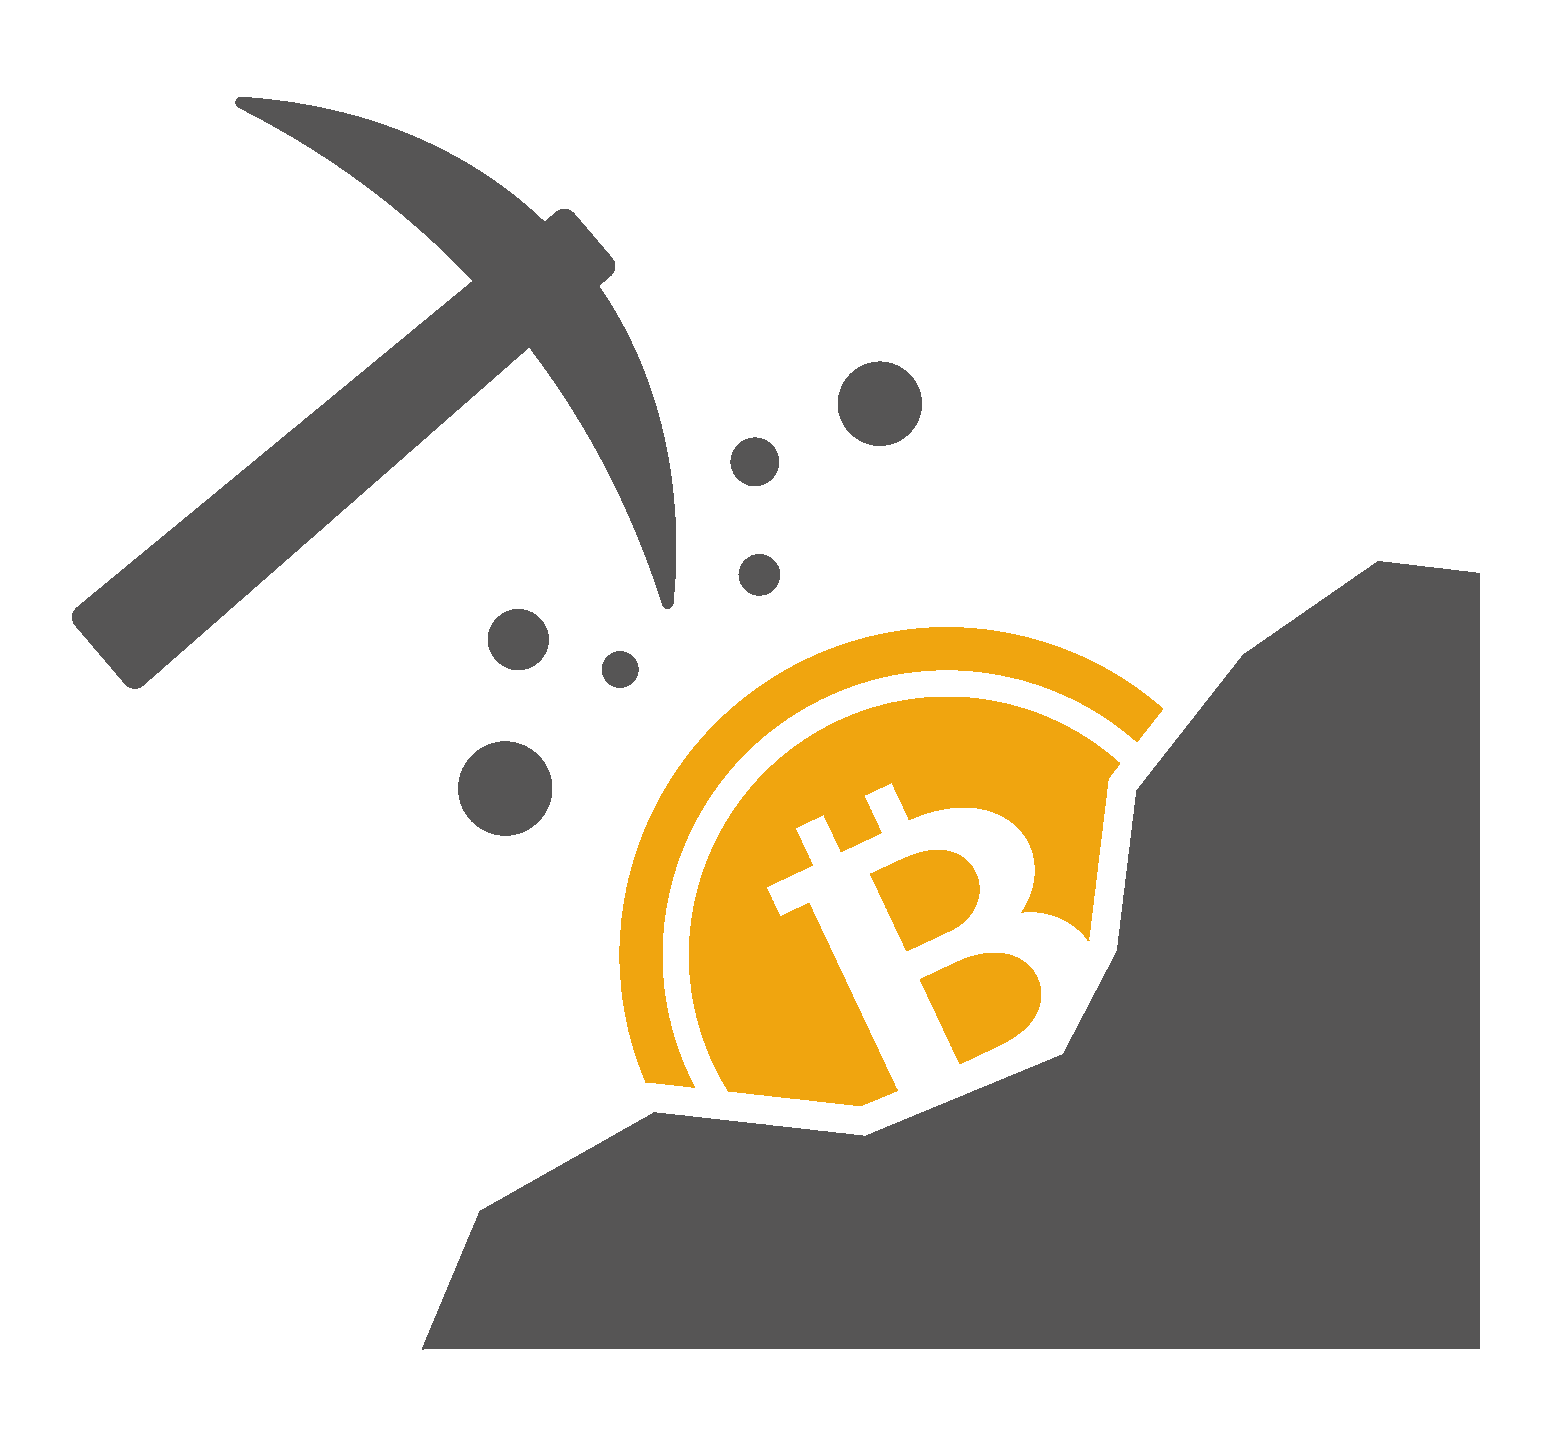 Mining Network Mines Bitcoin Cryptocurrency Cloud PNG Image